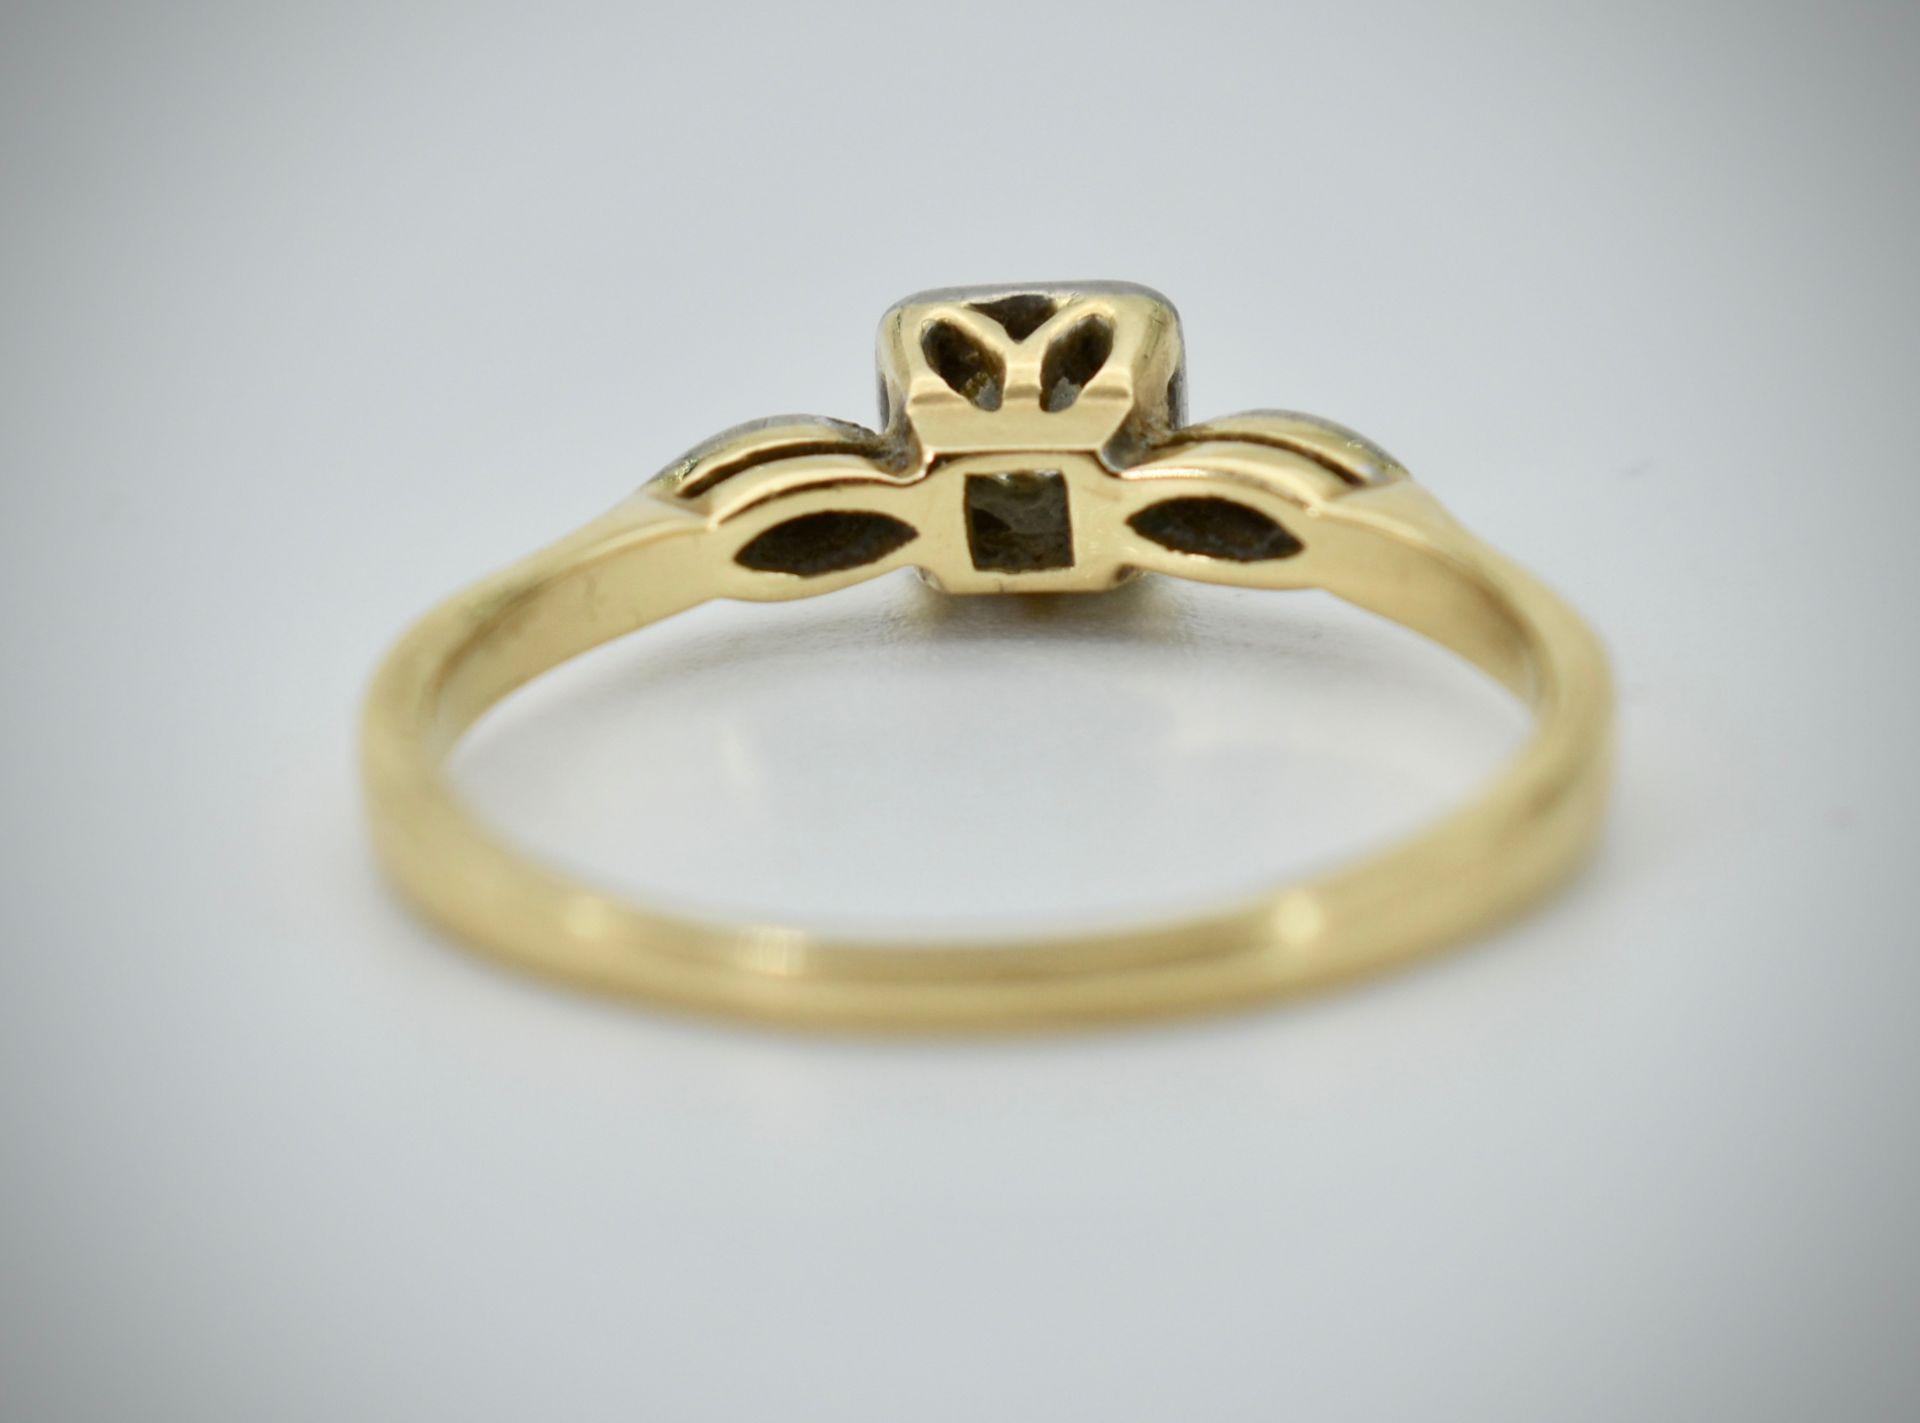 18ct Gold Platinum & Diamond Three Stone Ring - Image 3 of 4